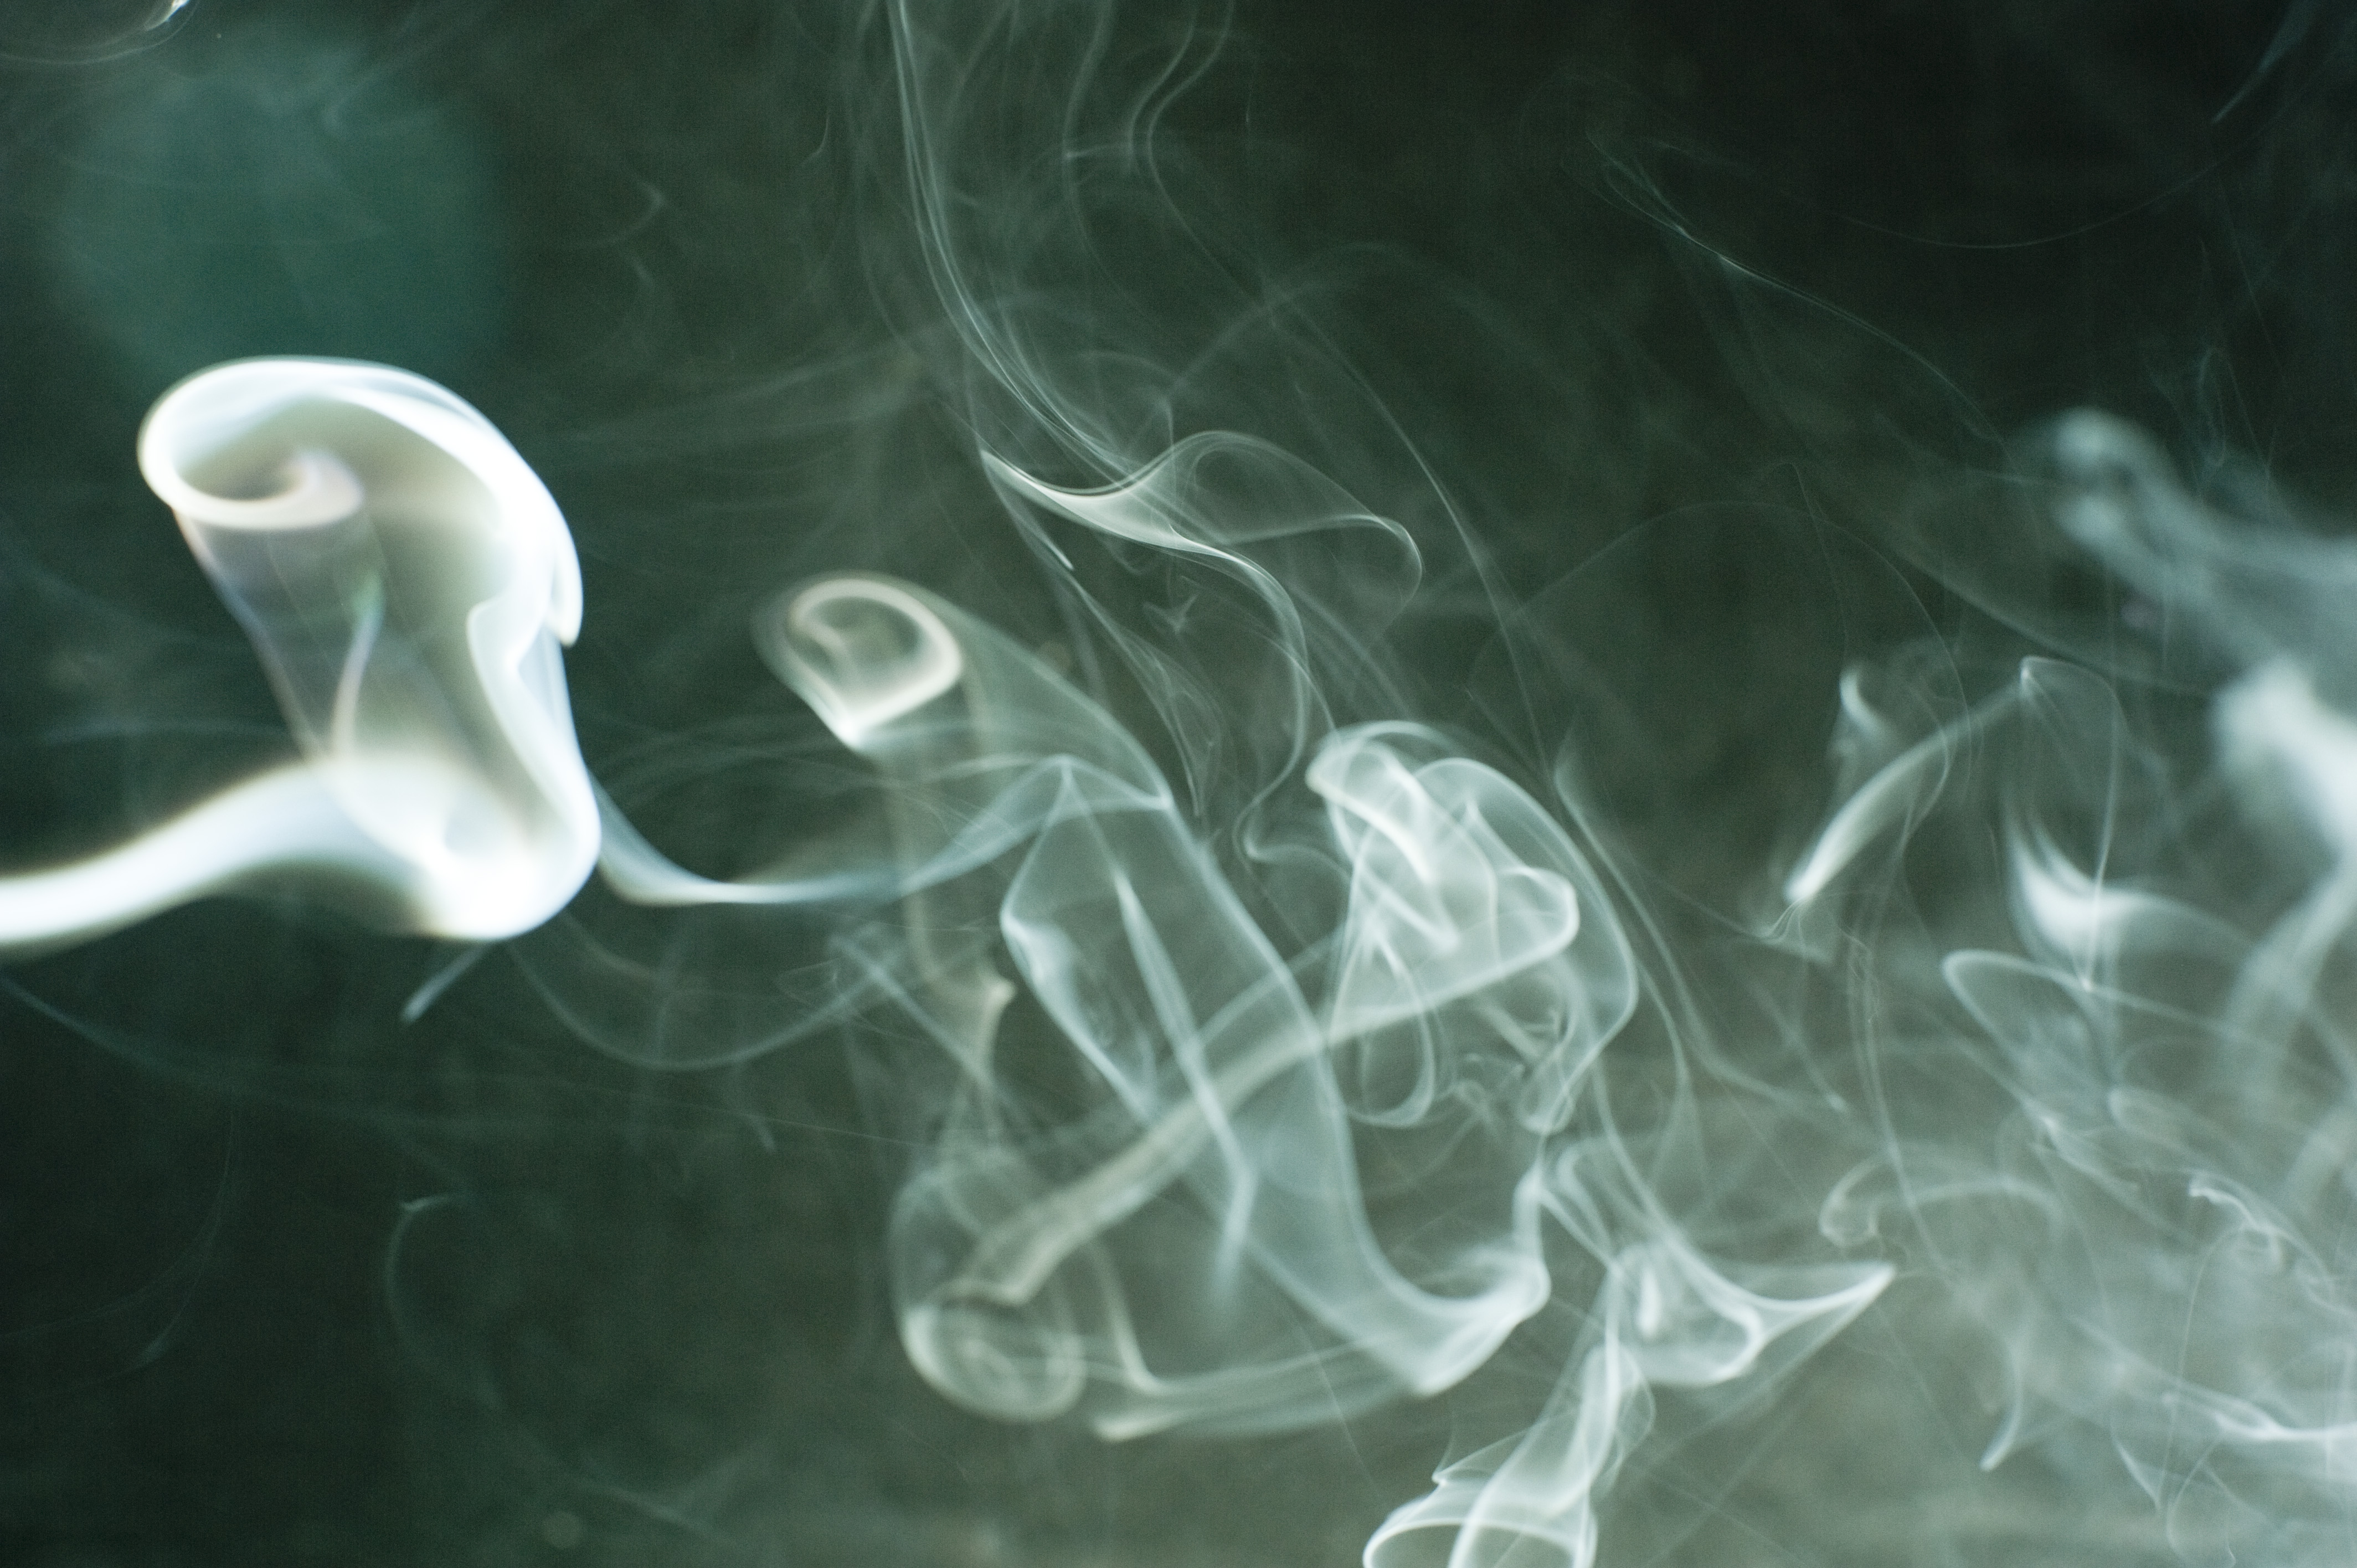 a misty smoky effect background with swirls of defuse smoke vapour